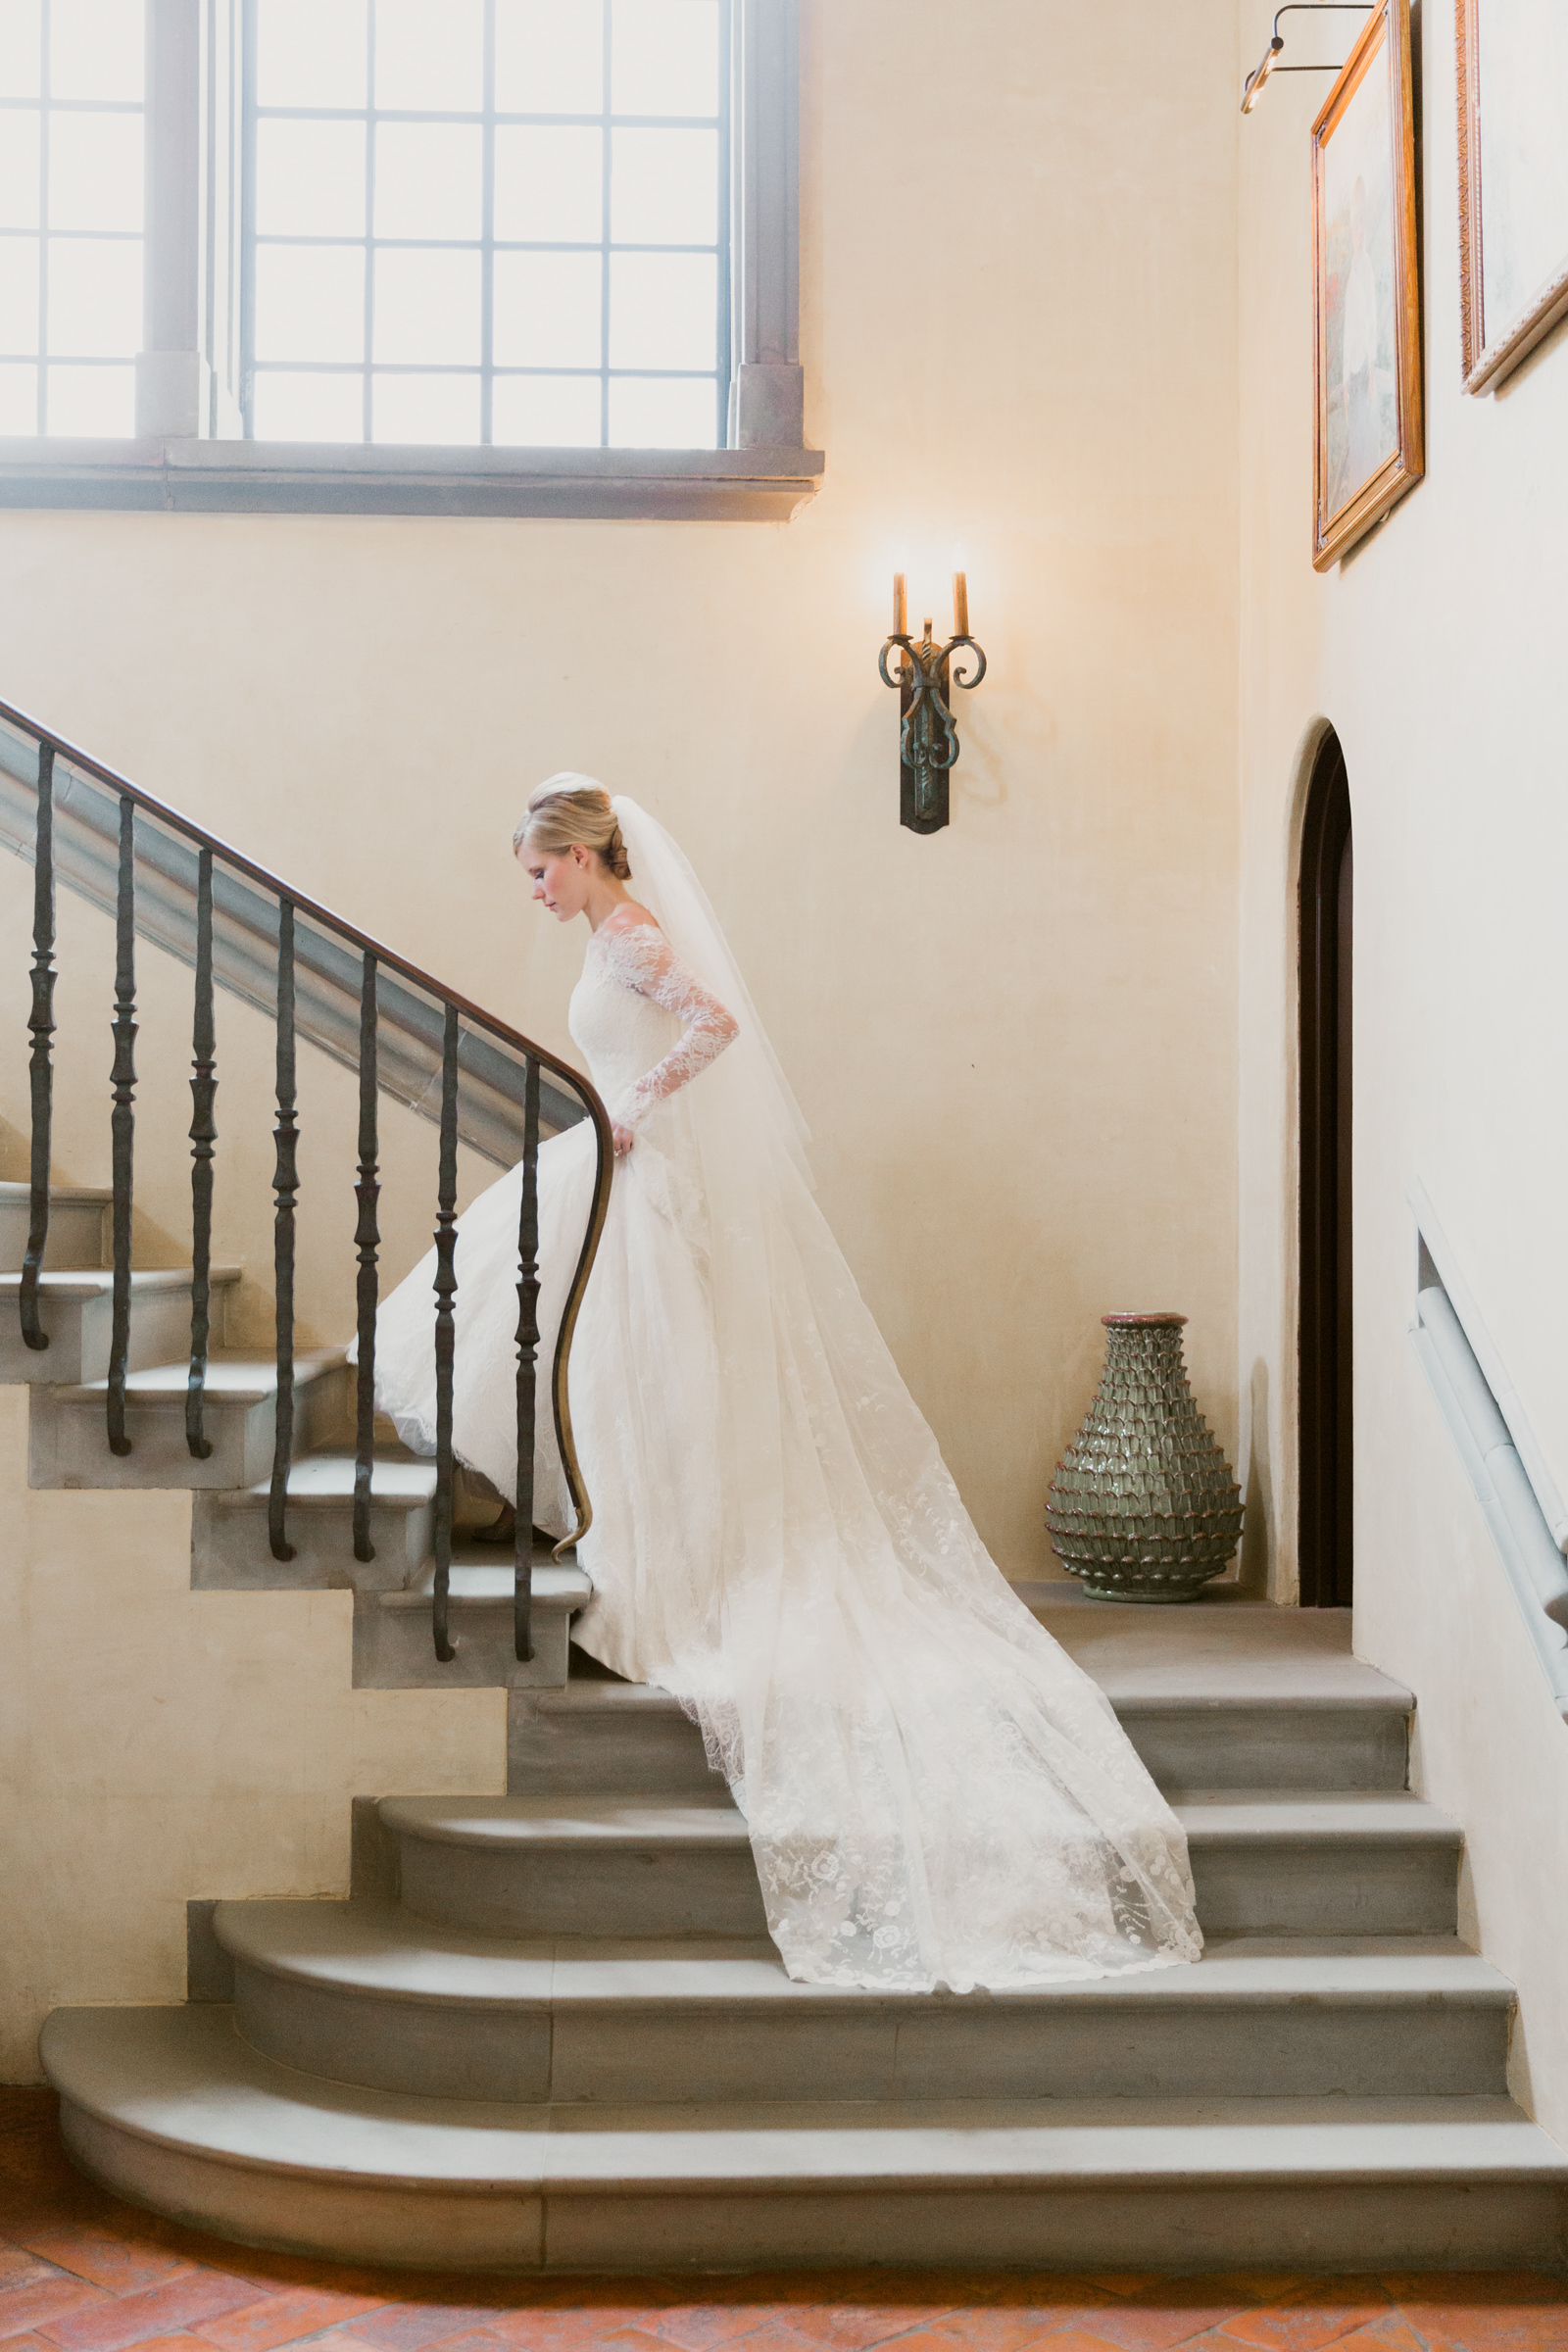 Bride in lace gown with long train ascends stairway - photo by Corbin Gurkin